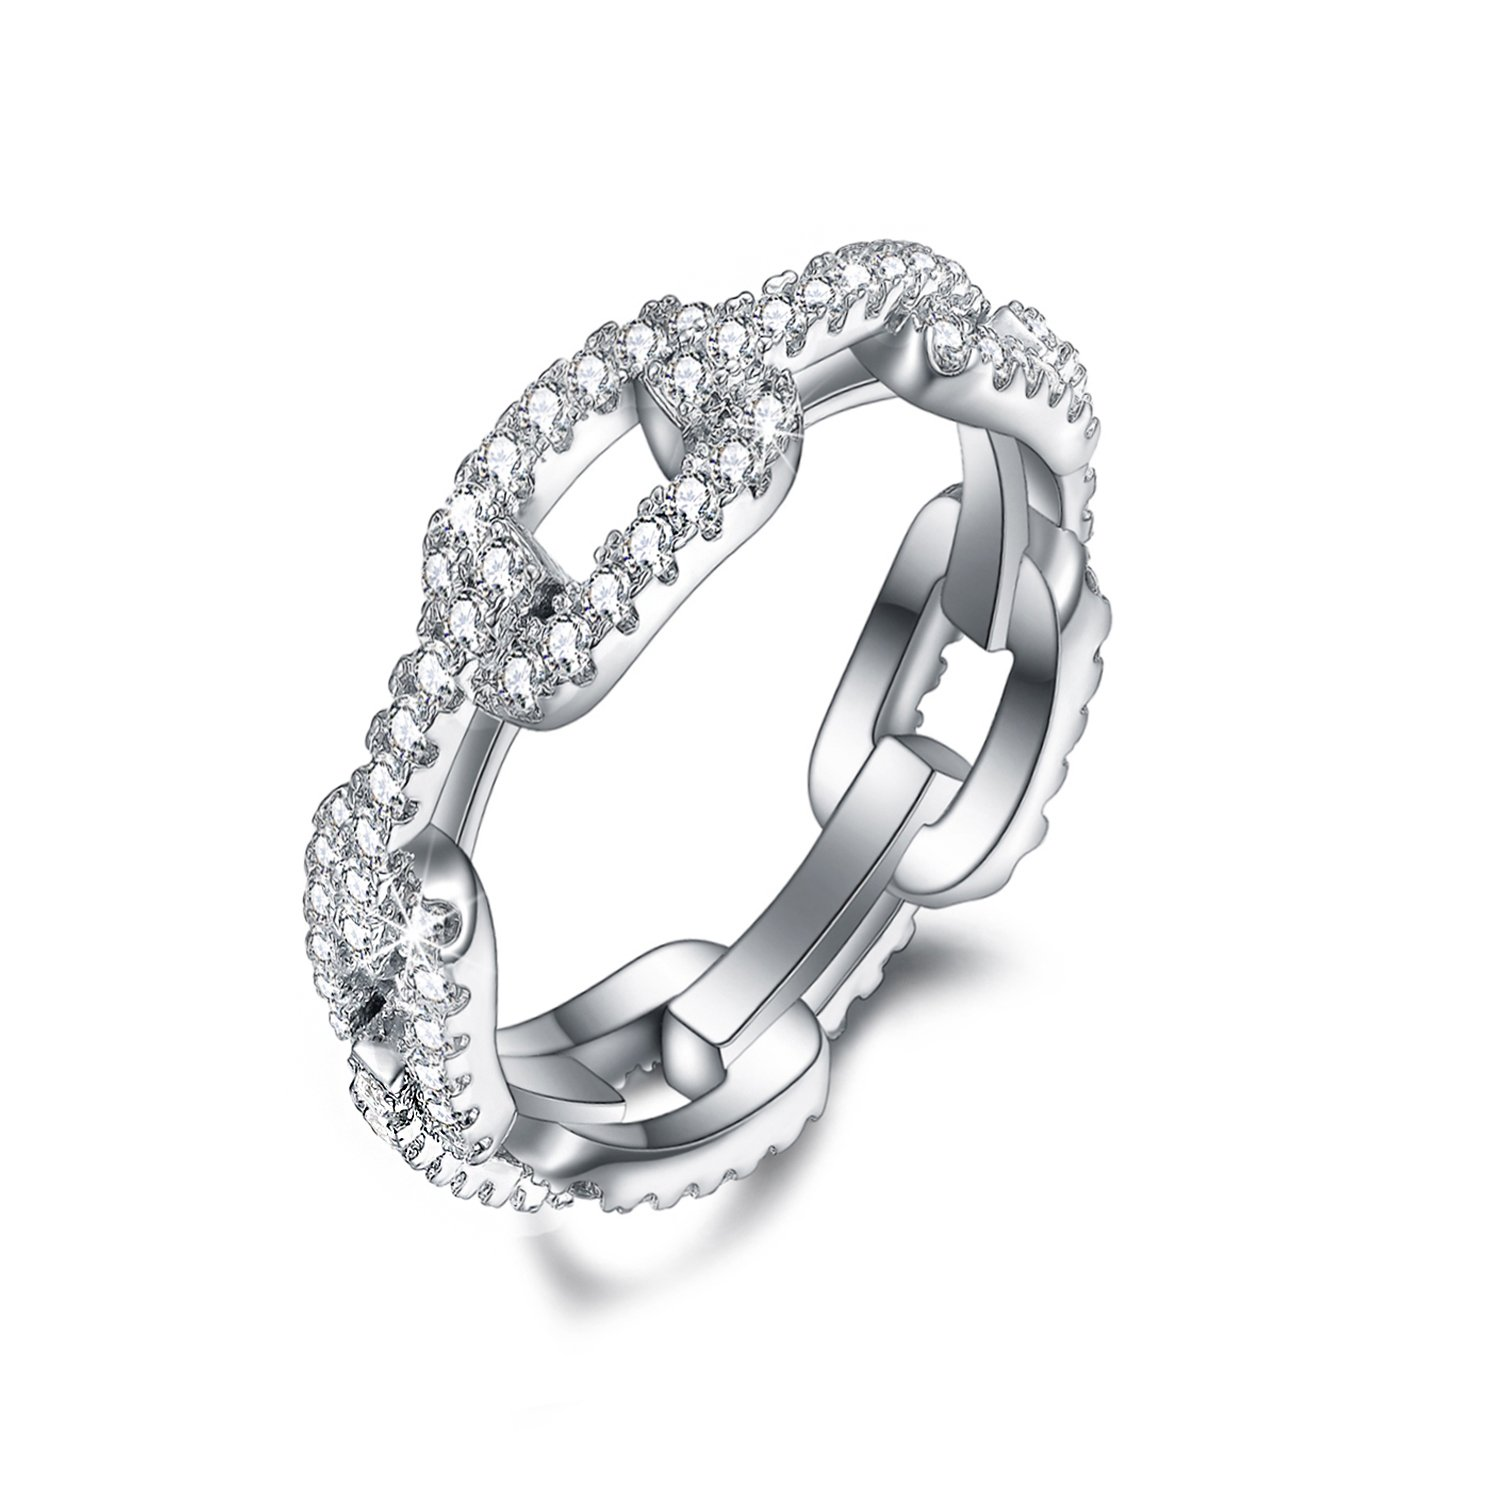 SPILOVE CZ Women Eternity Band 18k White Gold Plated Wedding Engagement Ring Fashion Jewelry, Size 6